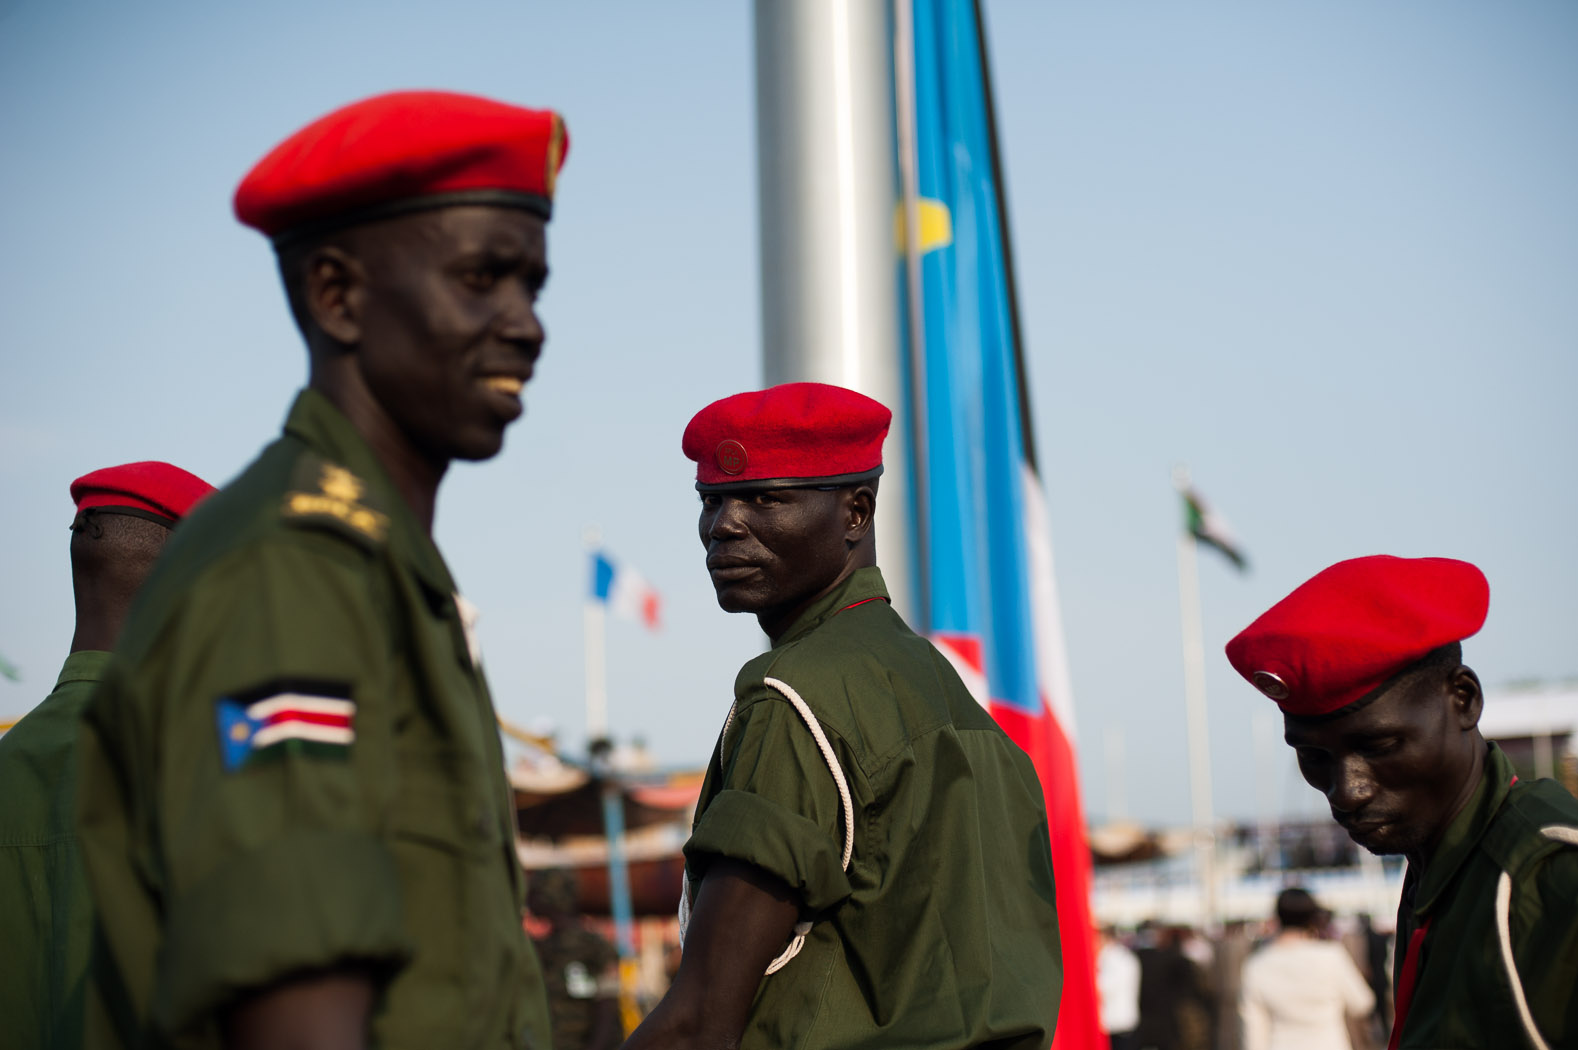 On the day of independence itself, an air of jubilance filled the air at the Dr. John Garang Memorial in Juba, as international dignitaries assembled to welcome South Sudan as the world's 193rd nation.